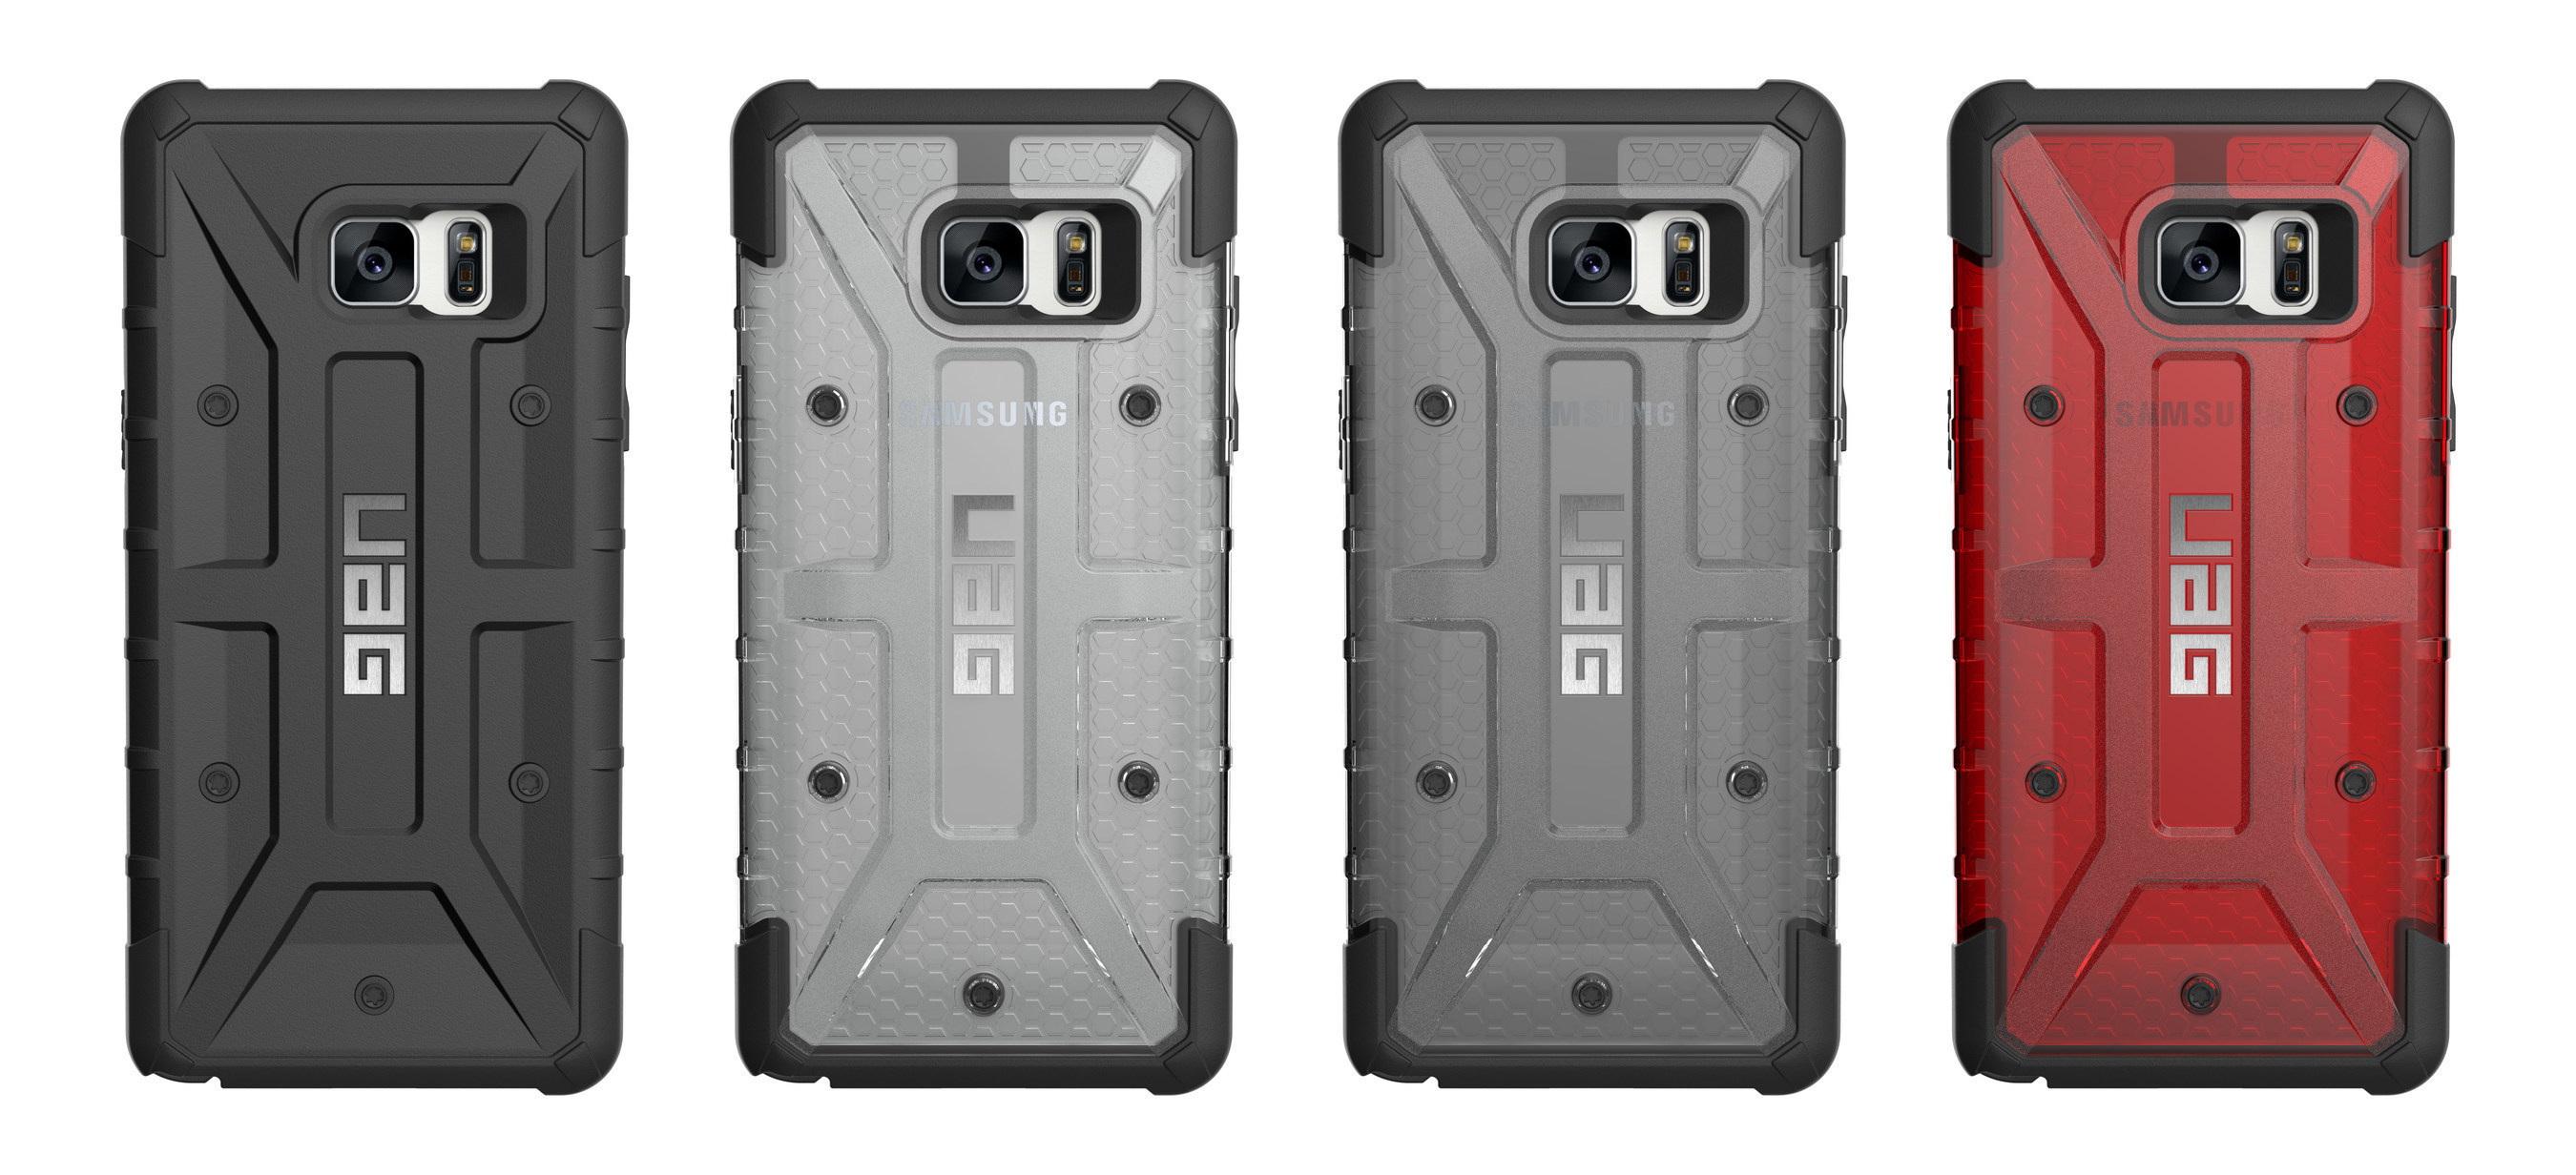 UAG Releases Lightweight Mil-Spec Cases For The New Samsung Galaxy Note 7